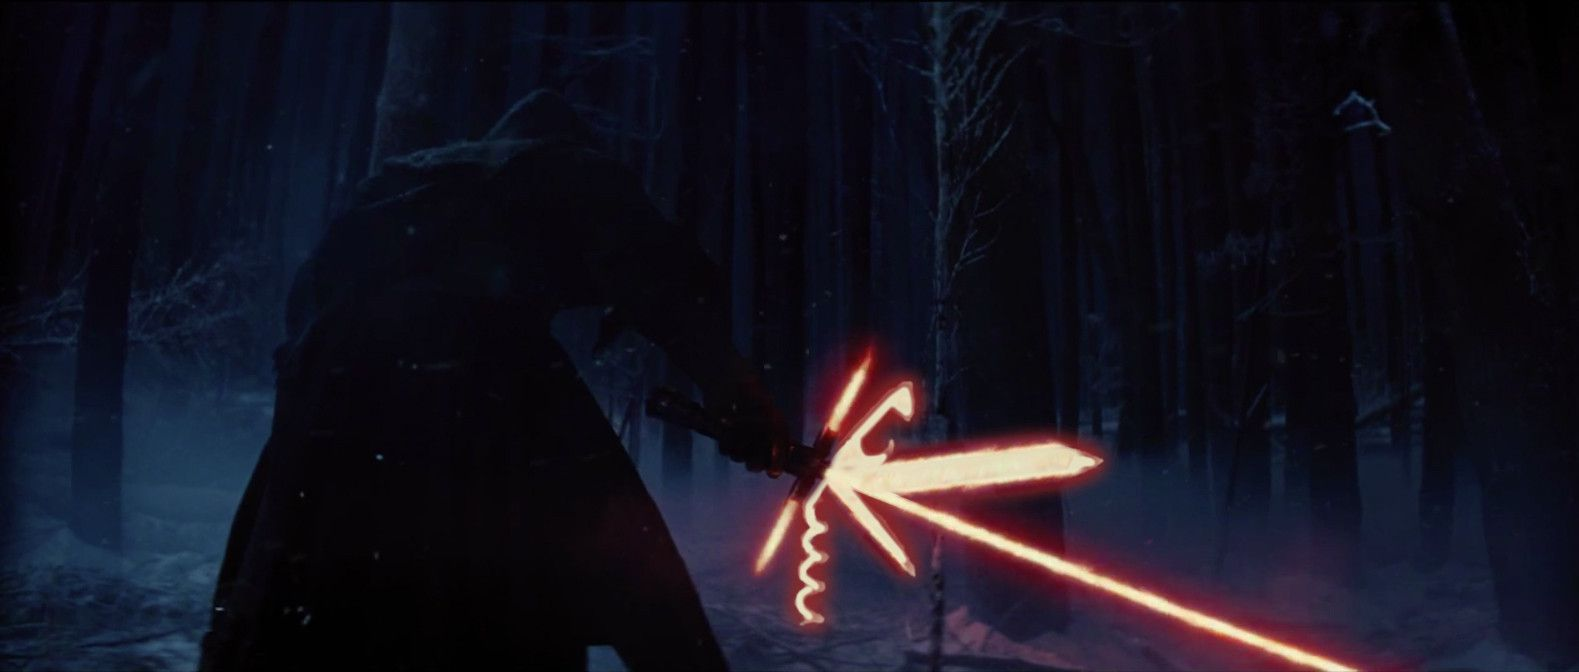 Kylo Ren and his tri-lightsaber